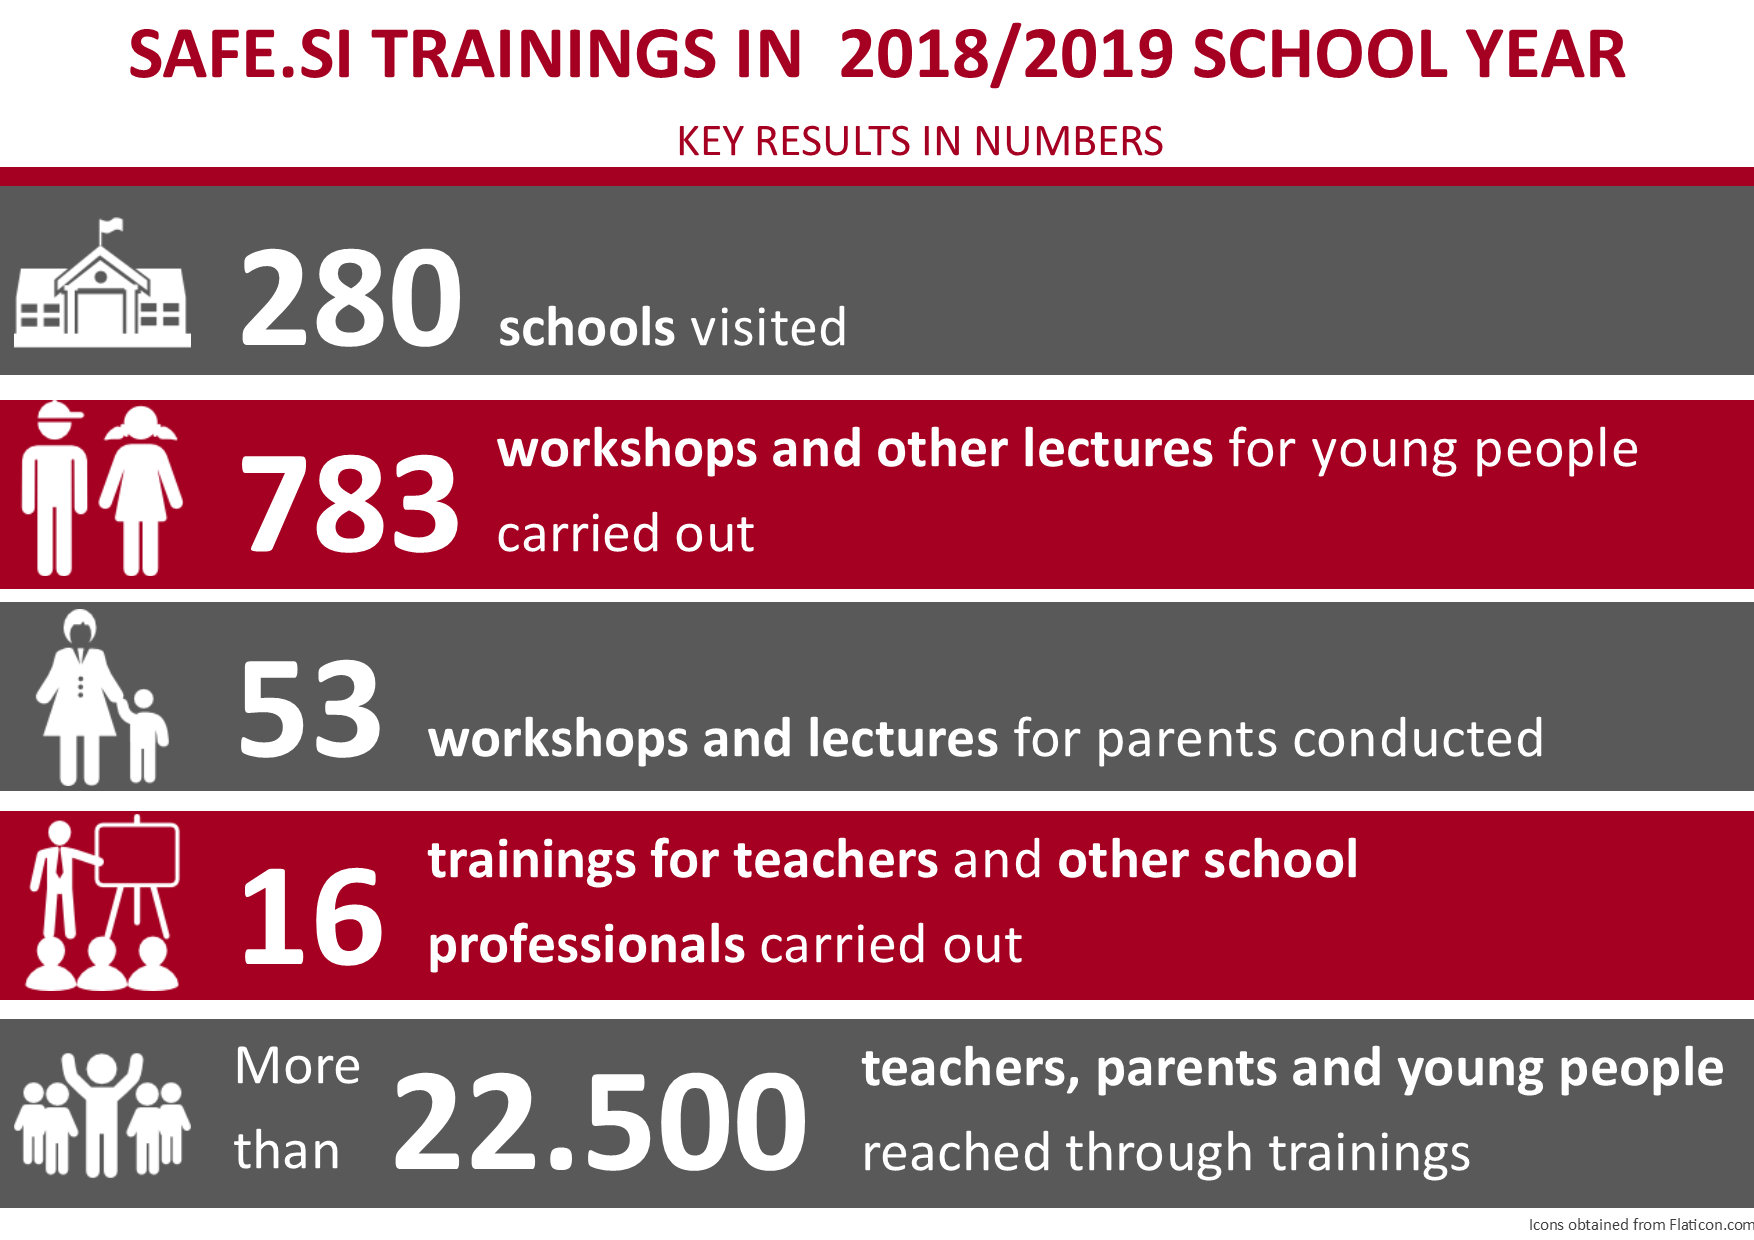 Infographic showing Safe.si trainings in 2018/19 school year